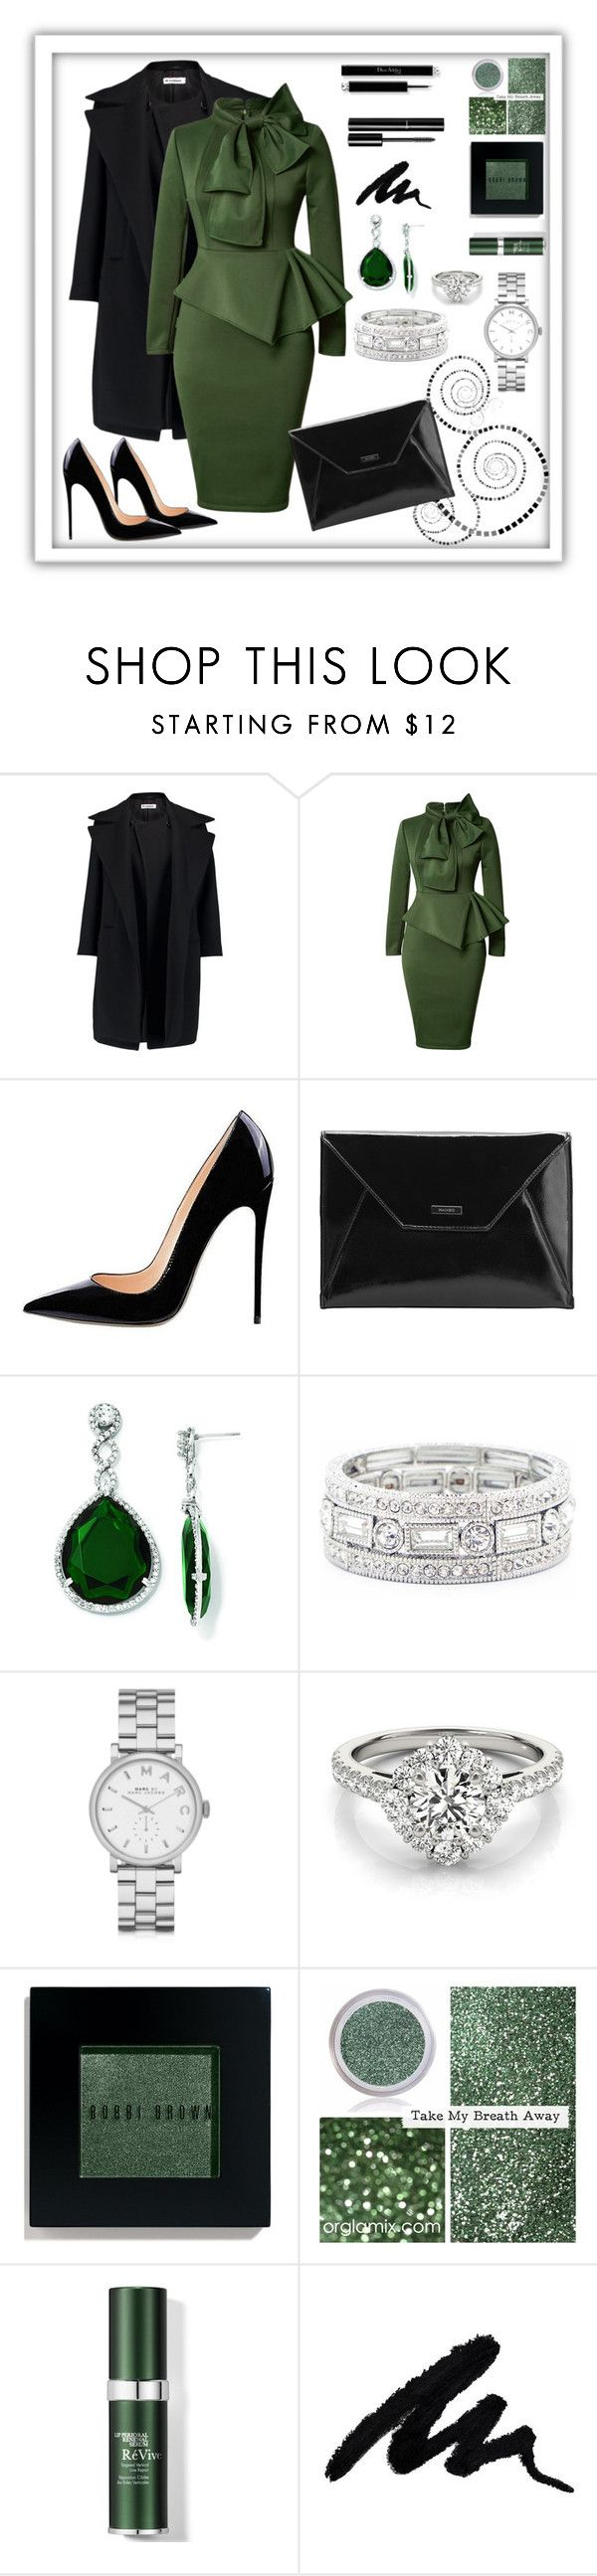 """Untitled #501"" by mayer-fruzsina ❤ liked on Polyvore featuring Jil Sander, MANGO, Kevin Jewelers, Sole Society, Marc by Marc Jacobs, Bobbi Brown Cosmetics, RéVive and Chanel"